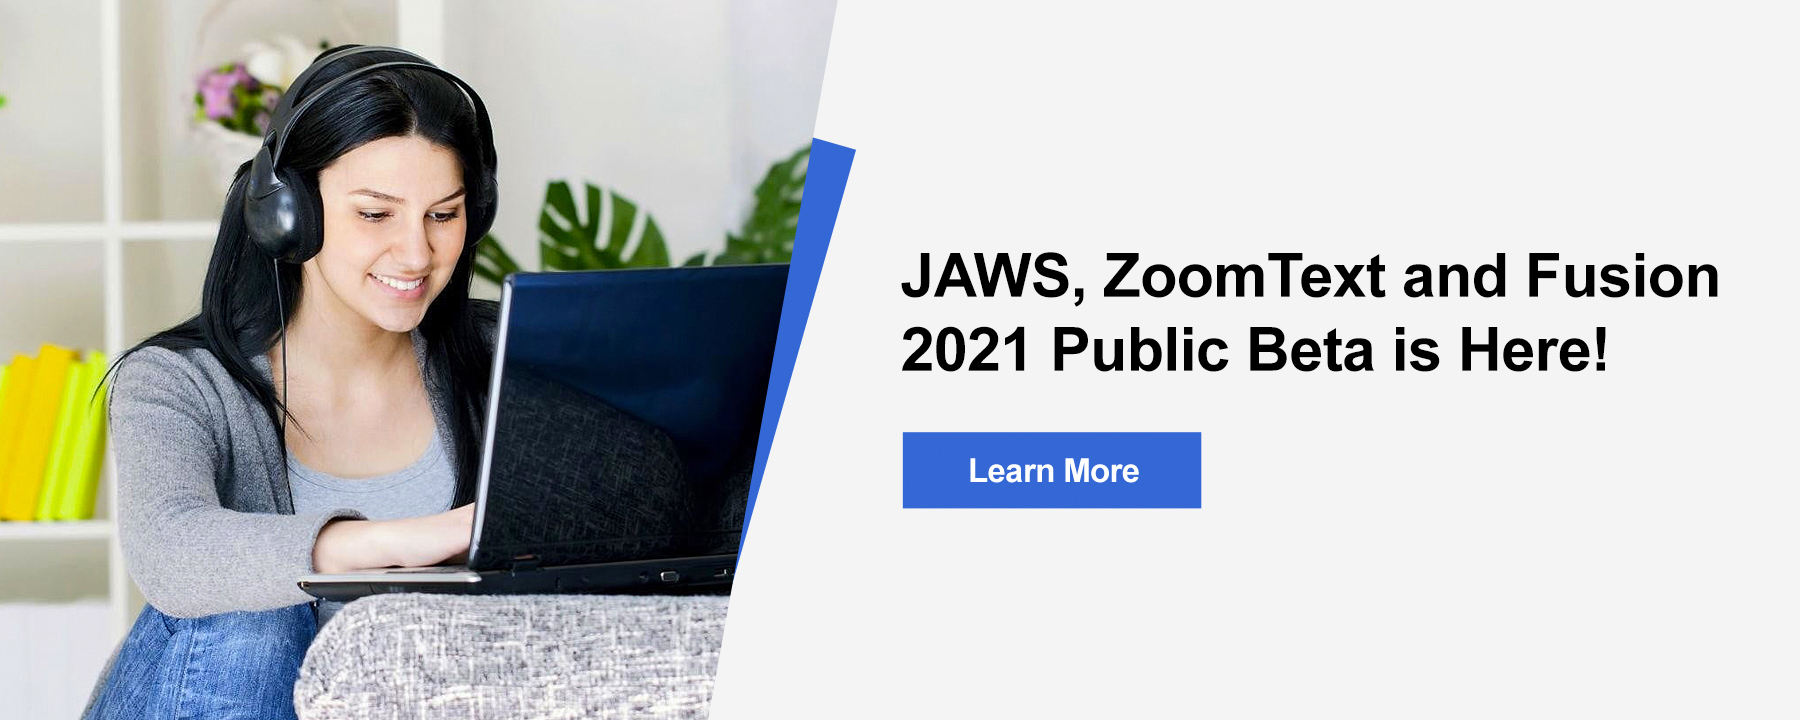 Introducing JAWS, Zoomtext and Fusion 2021 Beta. Learn more about the features and enhancements in this year's upgrade.